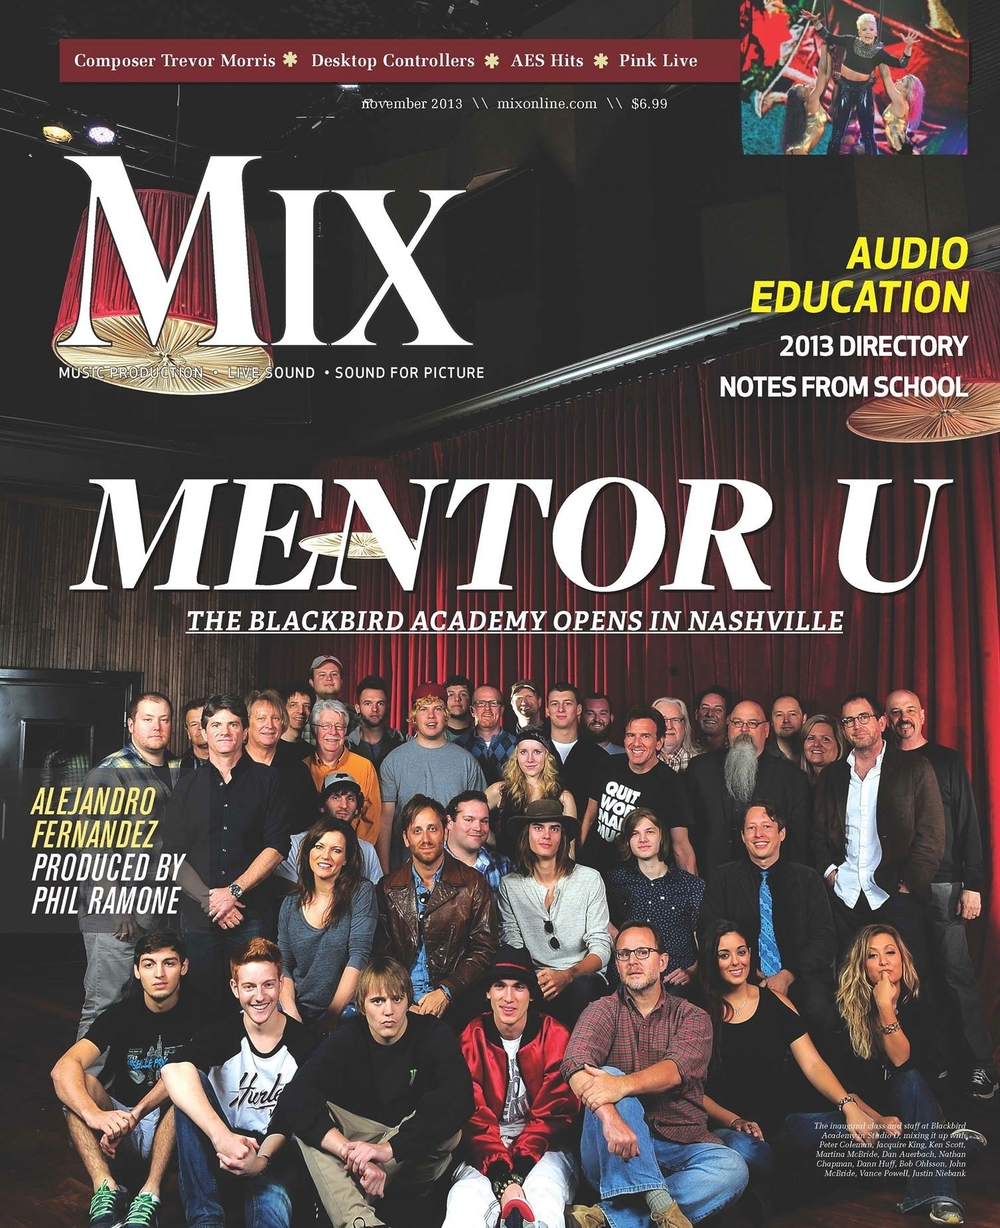 The Blackbird Academy gets the Mix Magazine cover!